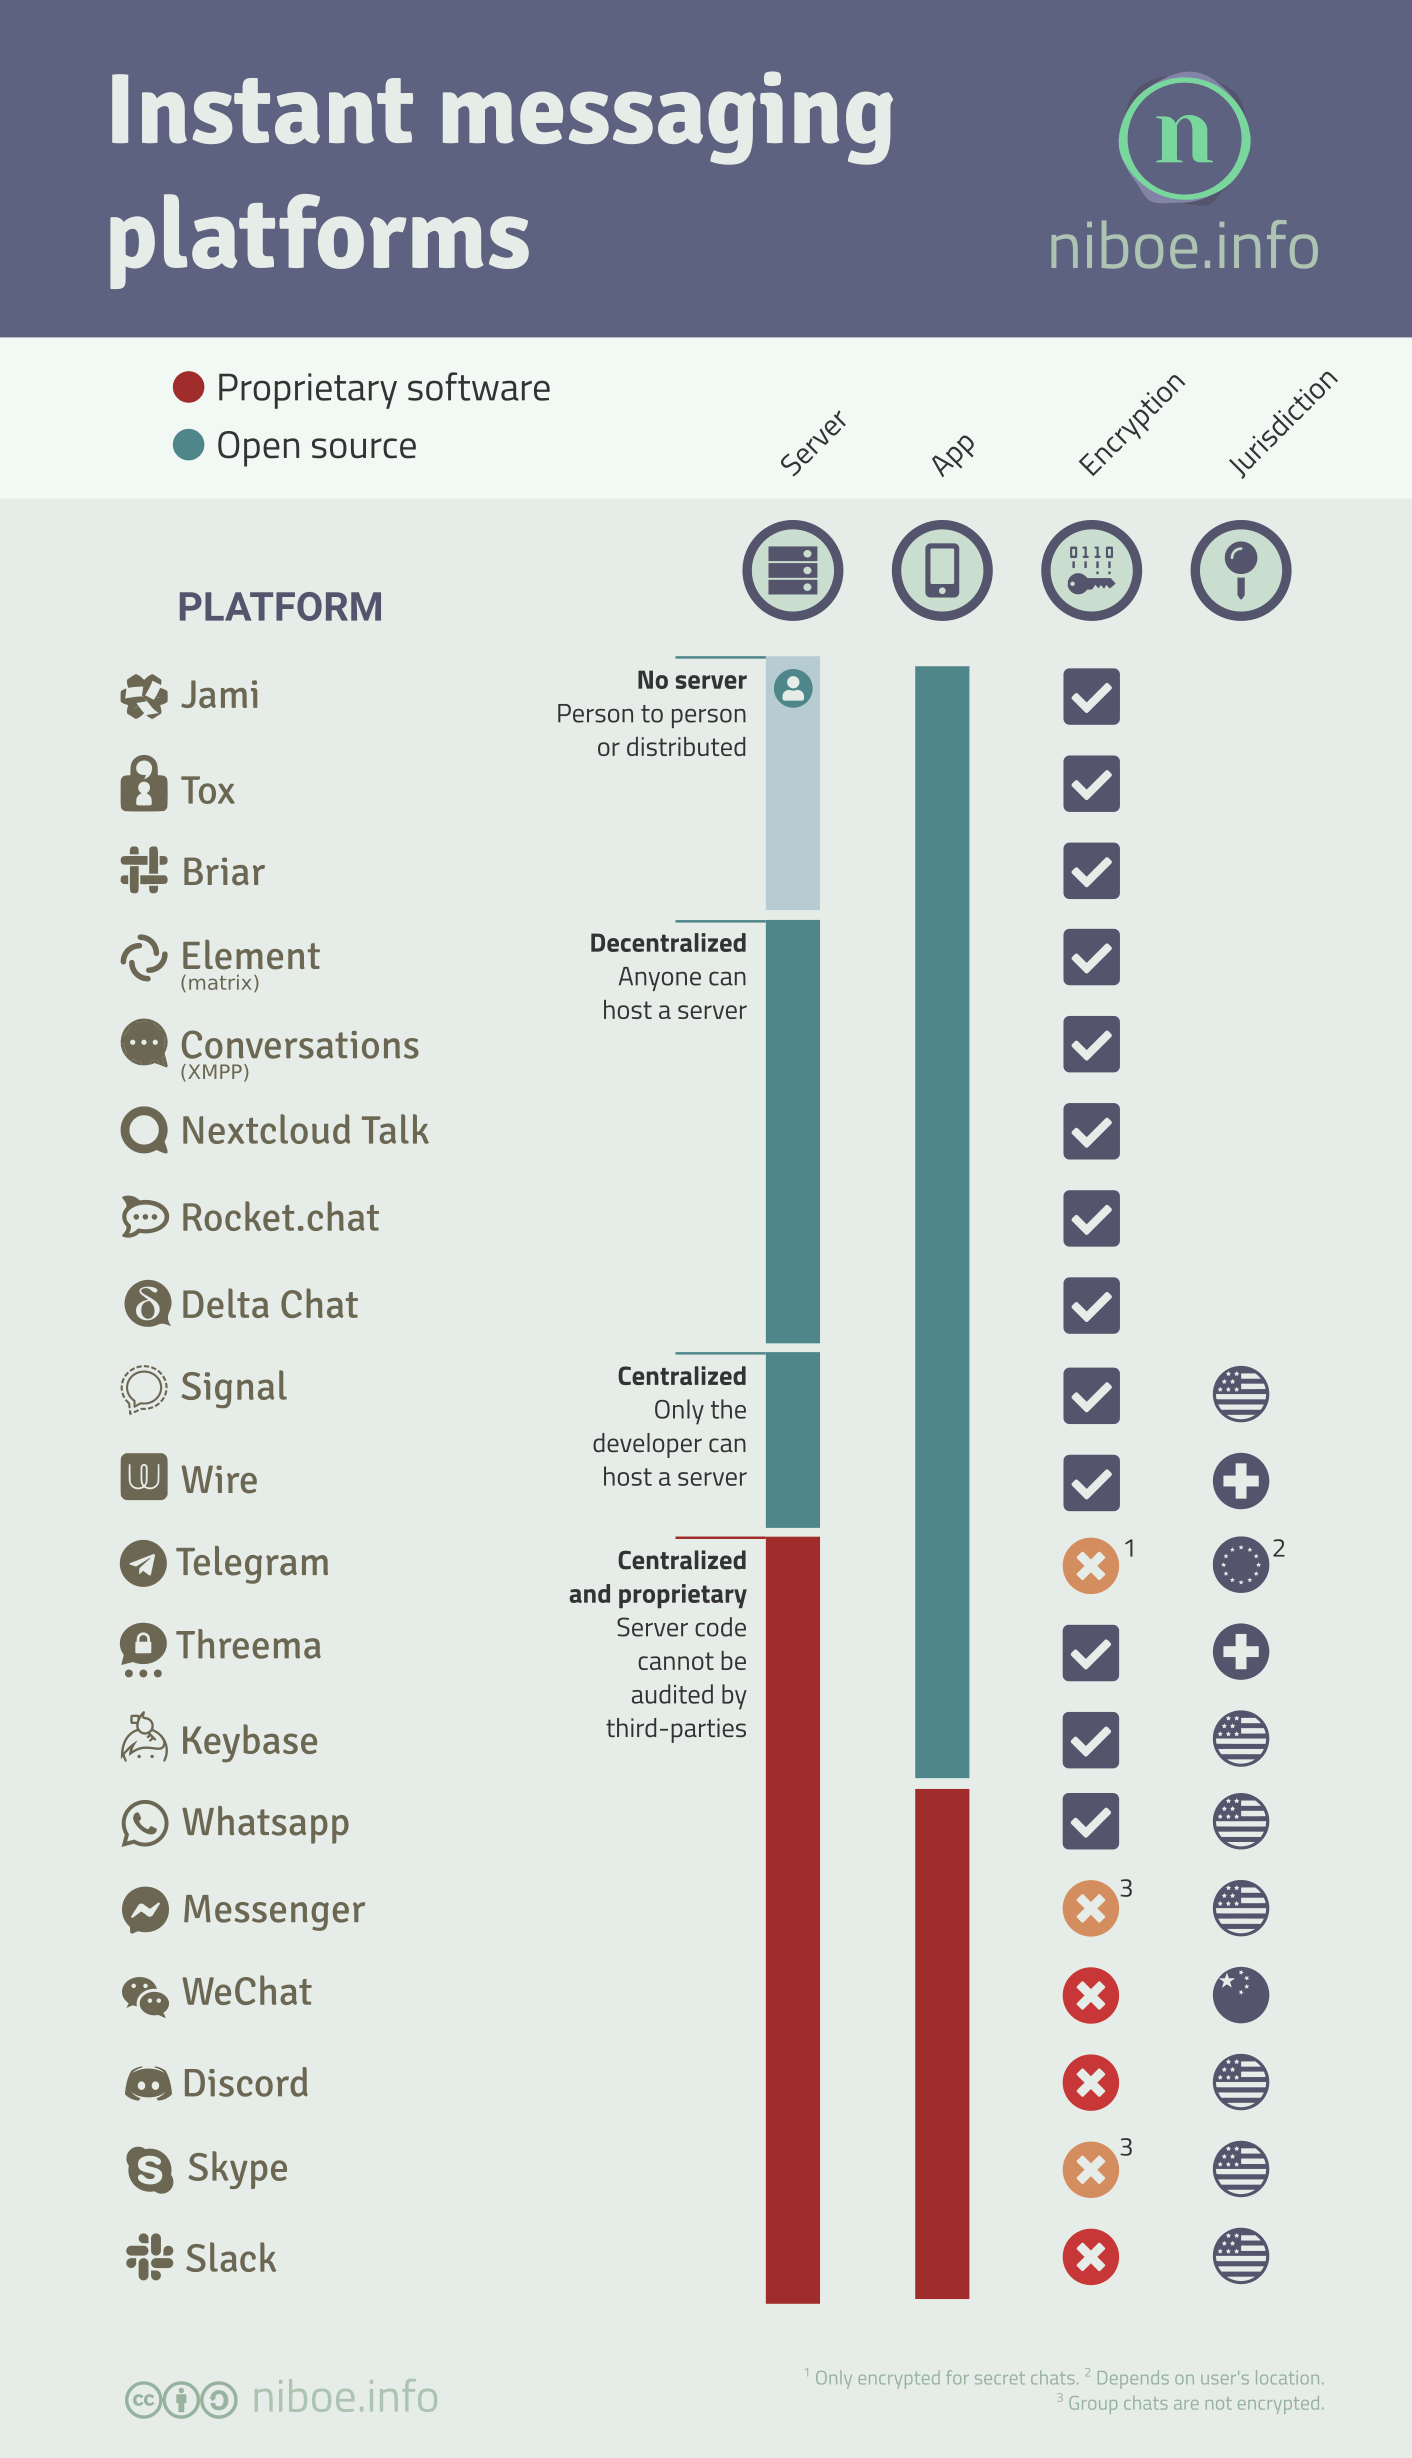 Graphic by niboe.info visualising the differences of messaging services with regards to open source code, encryption, and jurisdiction